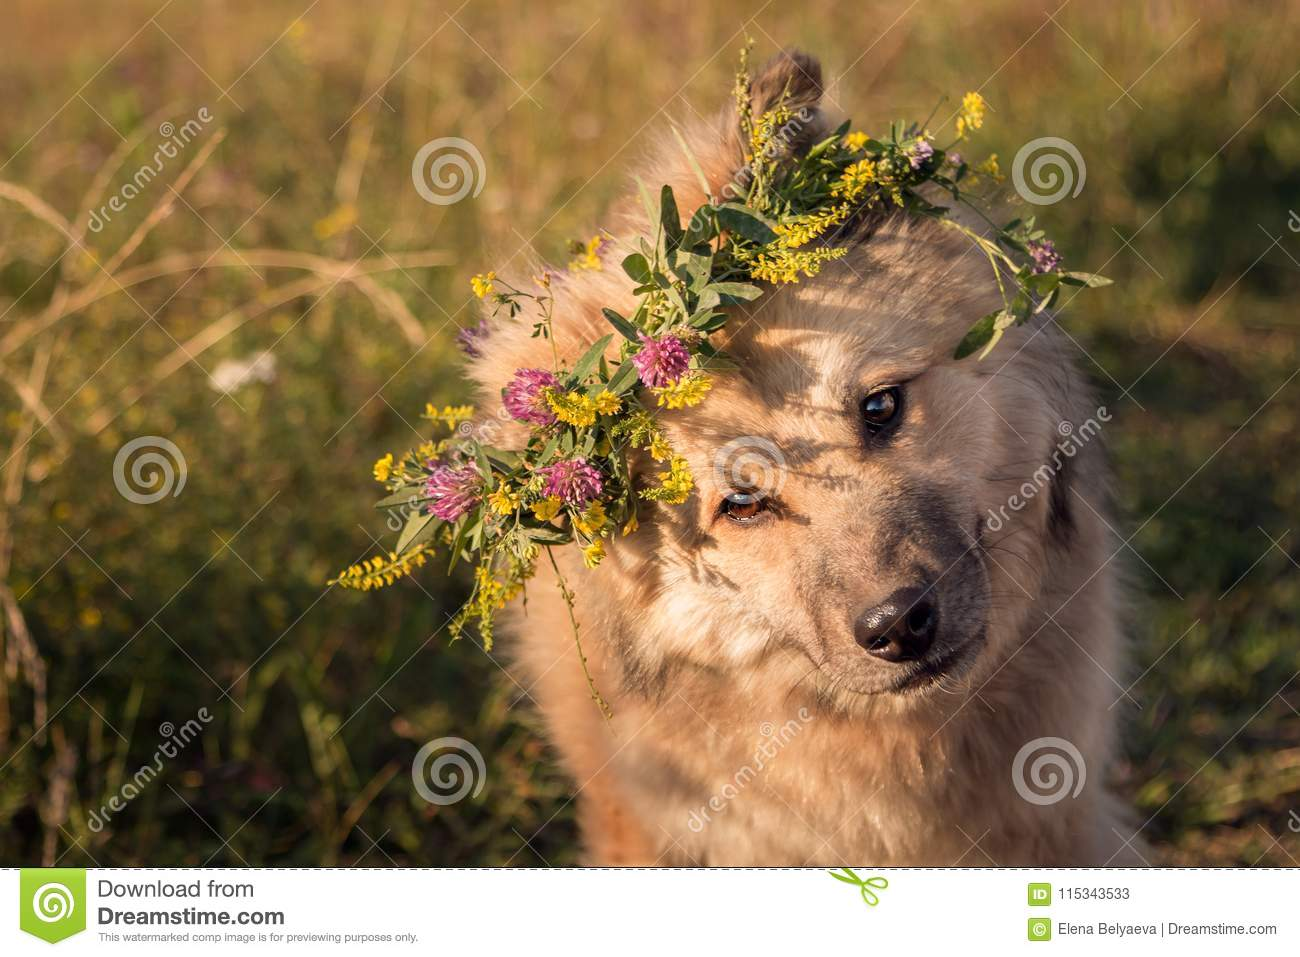 Shaggy sand-colored dog bent his head and looks interested at the photographer